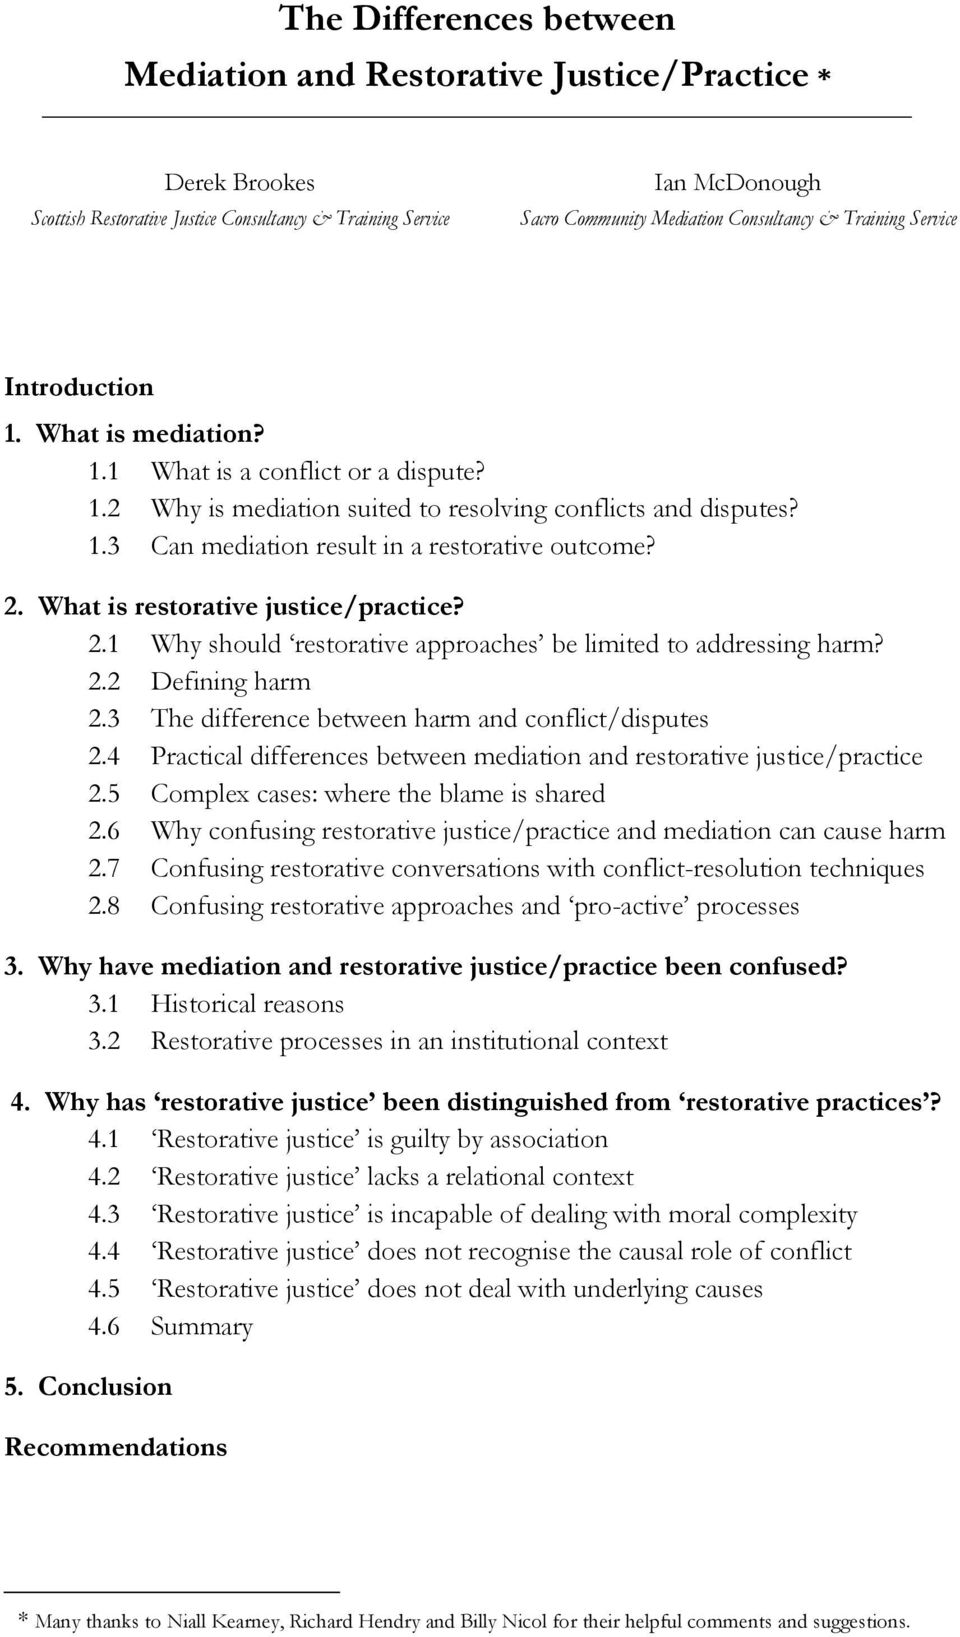 2. What is restorative justice/practice? 2.1 Why should restorative approaches be limited to addressing harm? 2.2 Defining harm 2.3 The difference between harm and conflict/disputes 2.